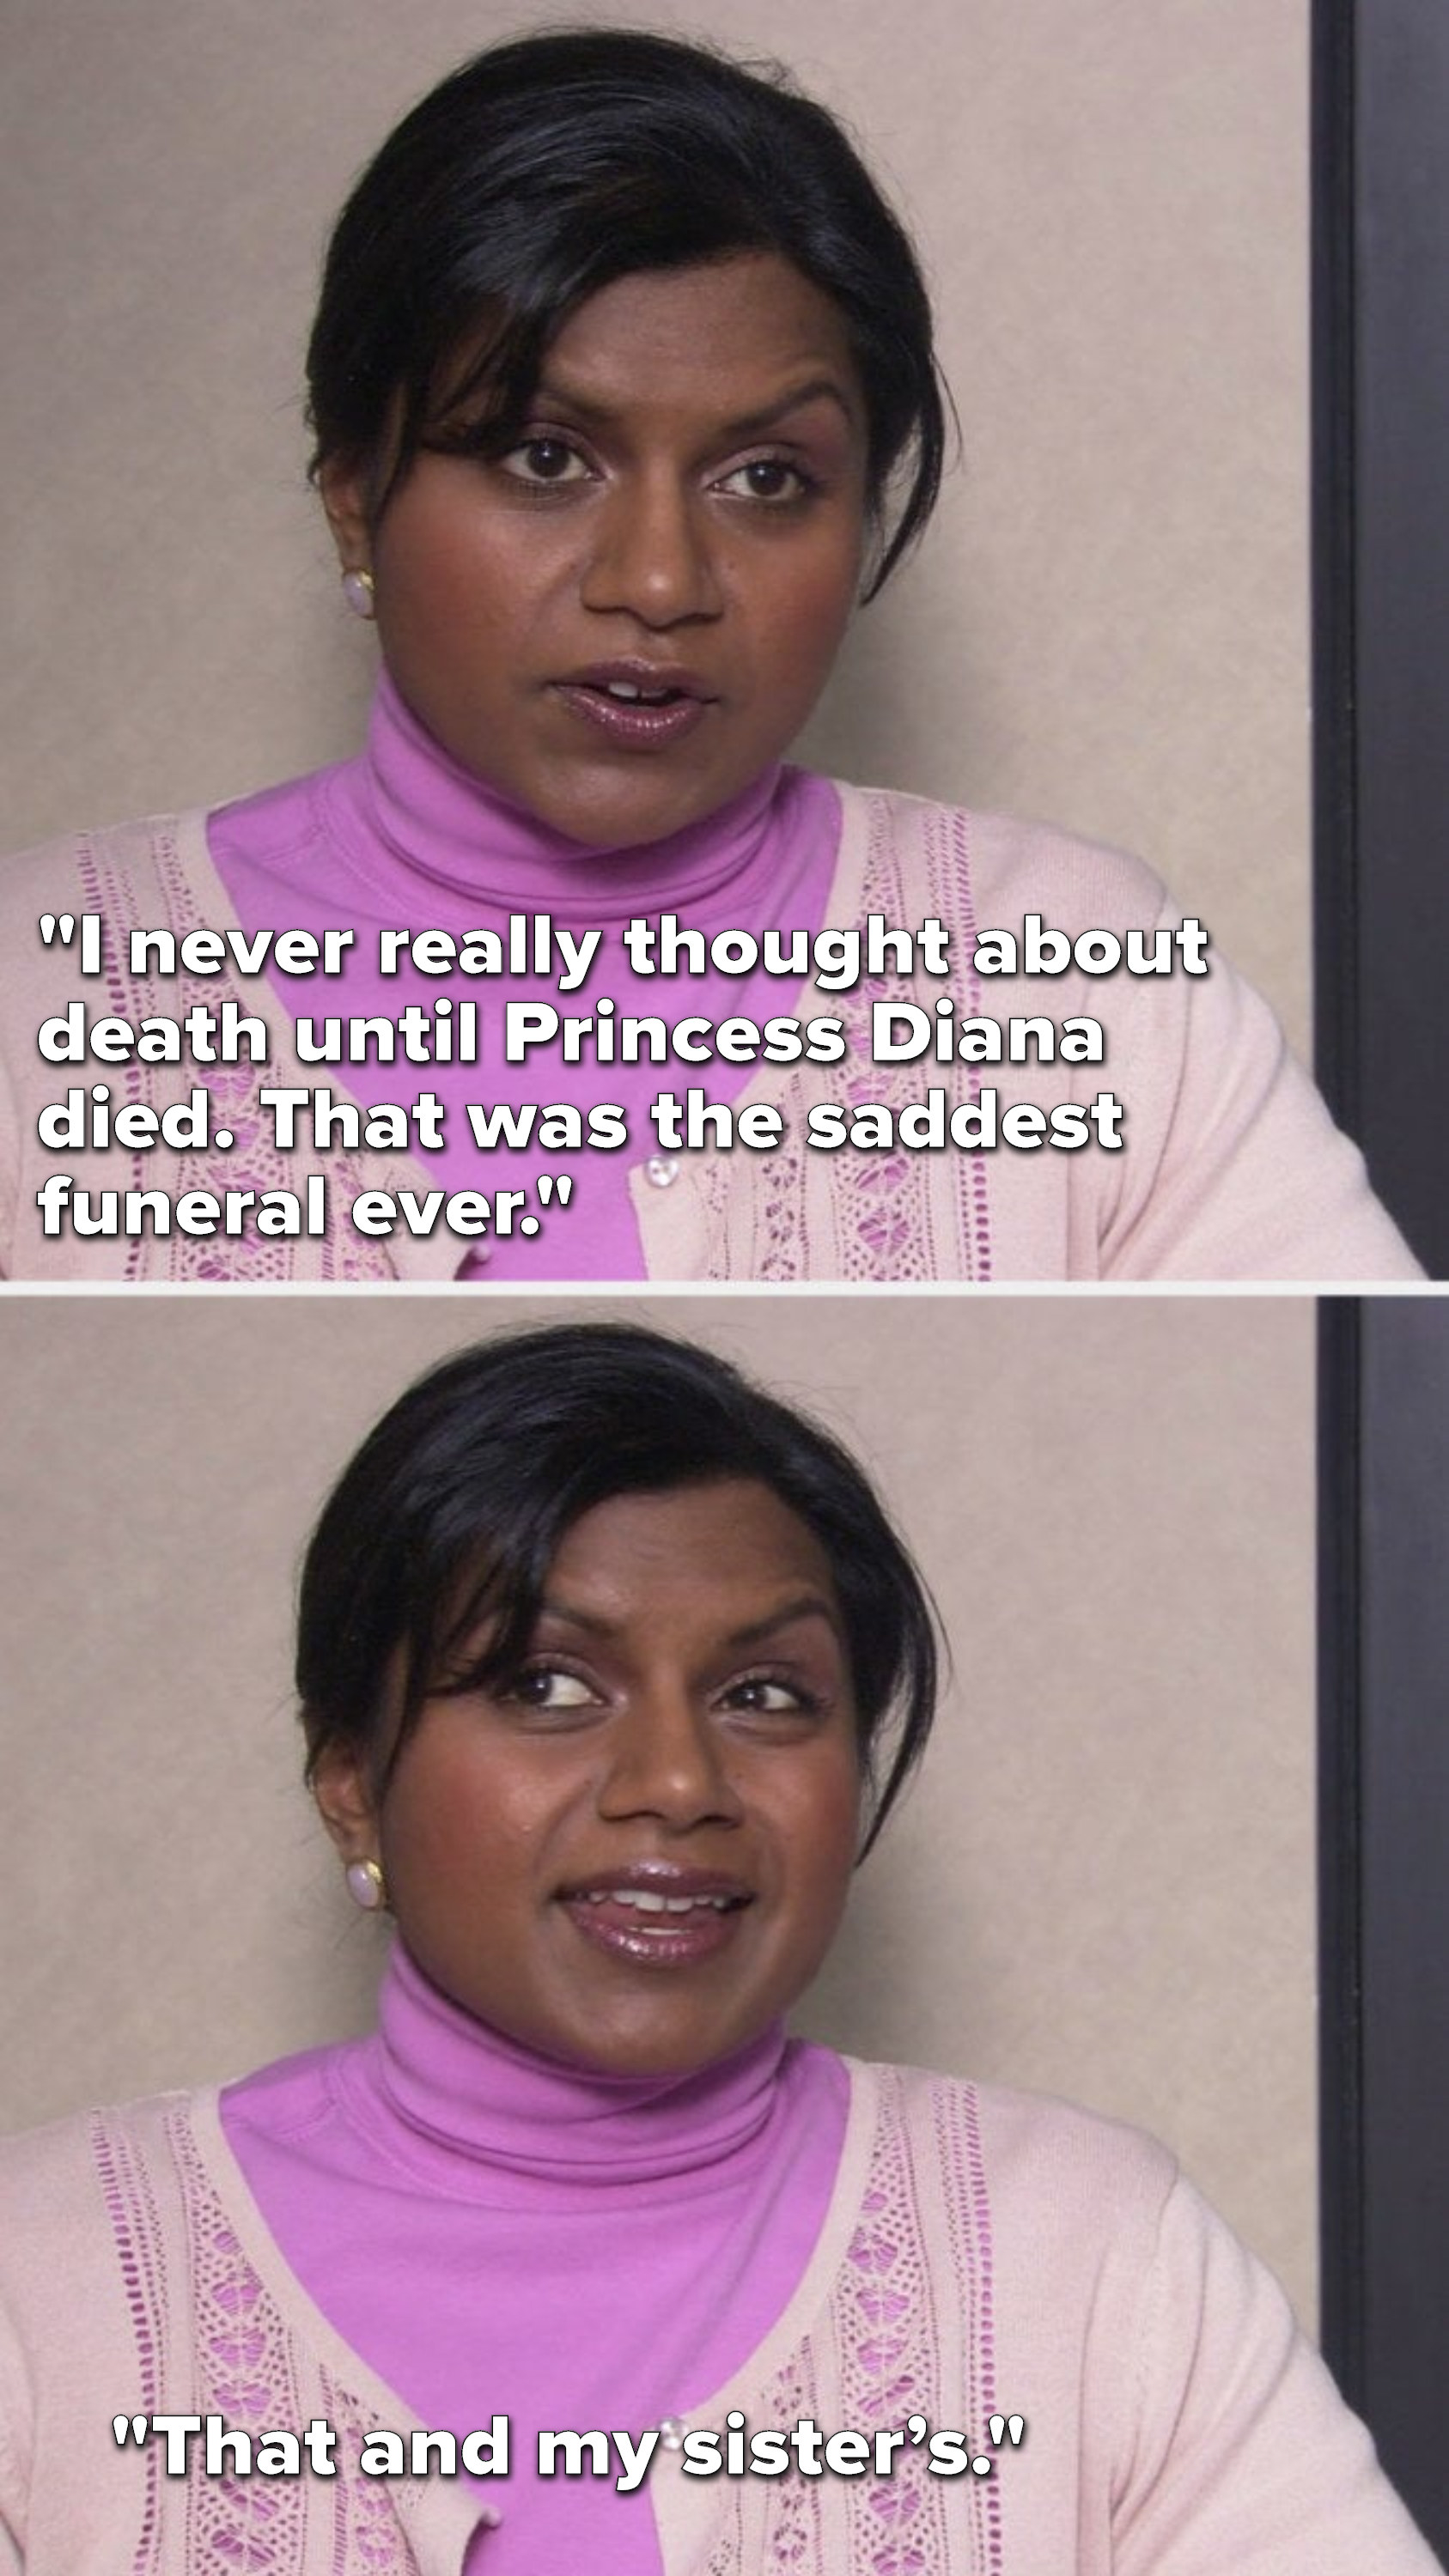 """Kelly says, """"I never really thought about death until Princess Diana died, that was the saddest funeral ever, that and my sister's"""""""